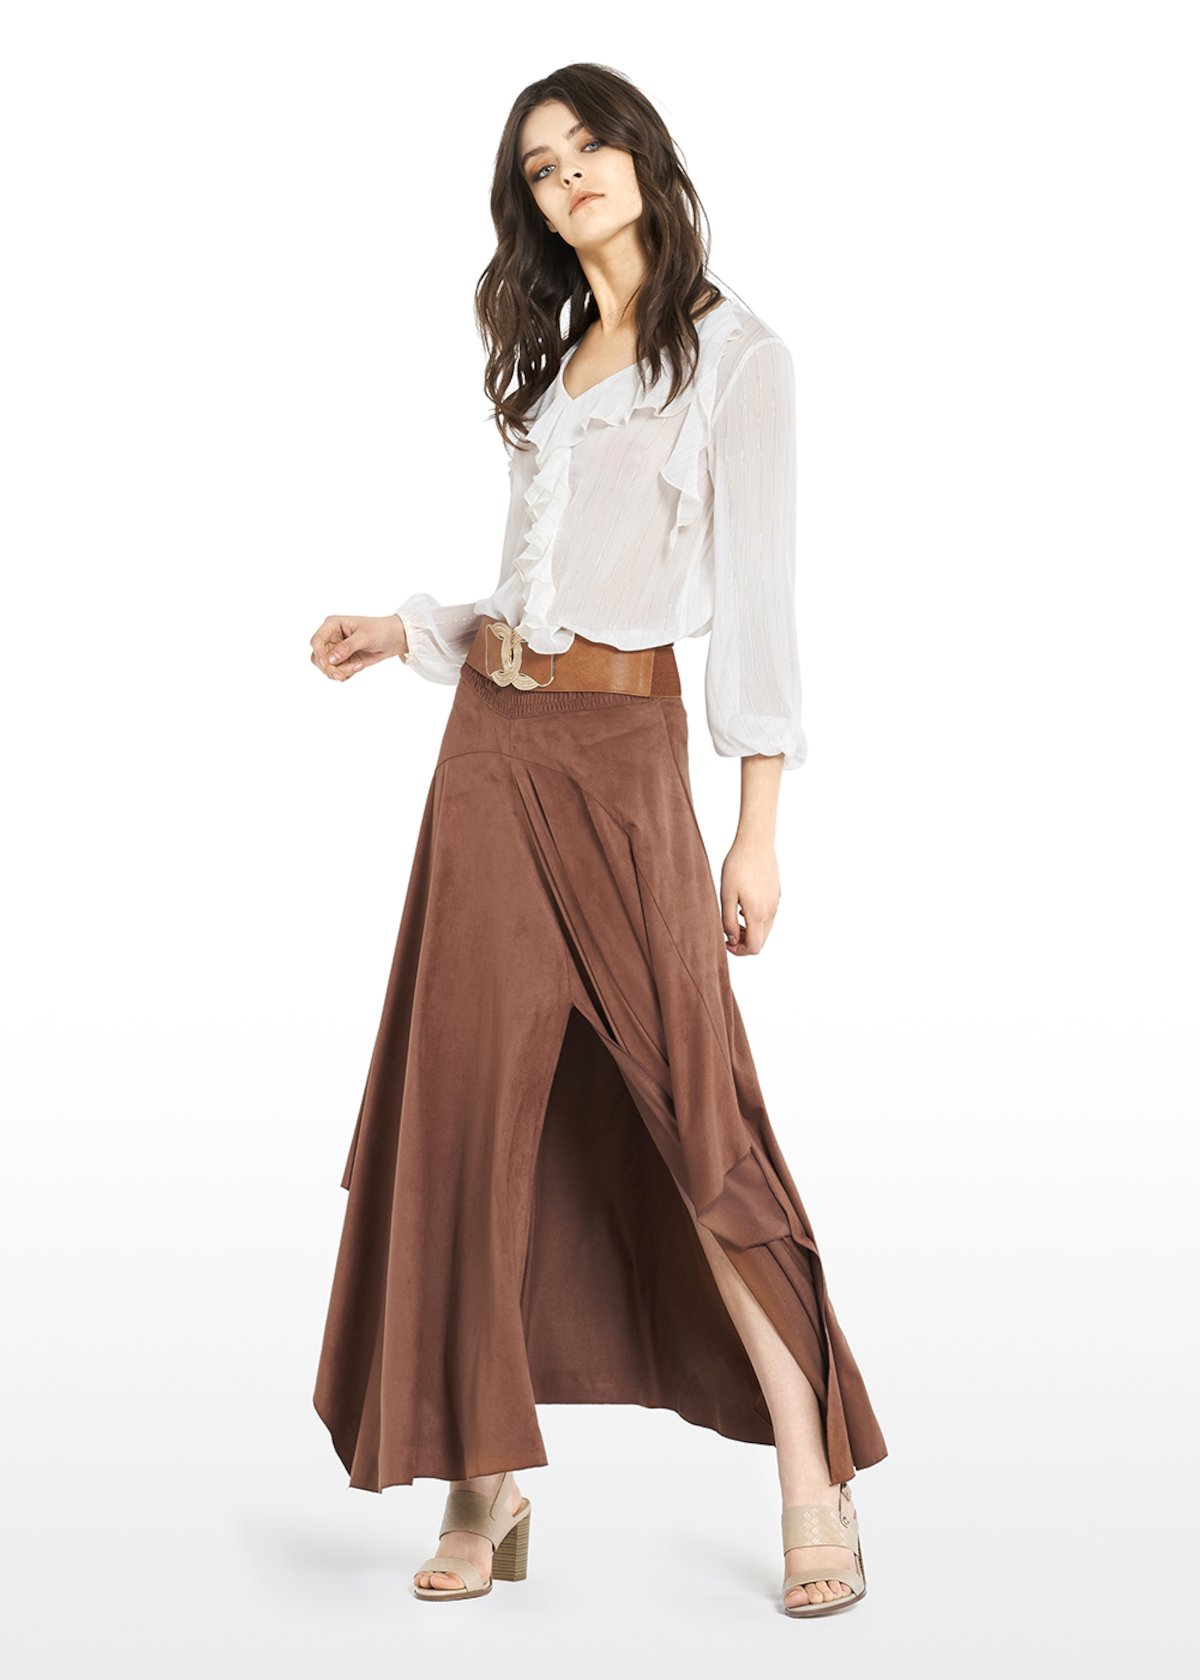 Giada fake suede long skirt with front slit - Tobacco - Woman